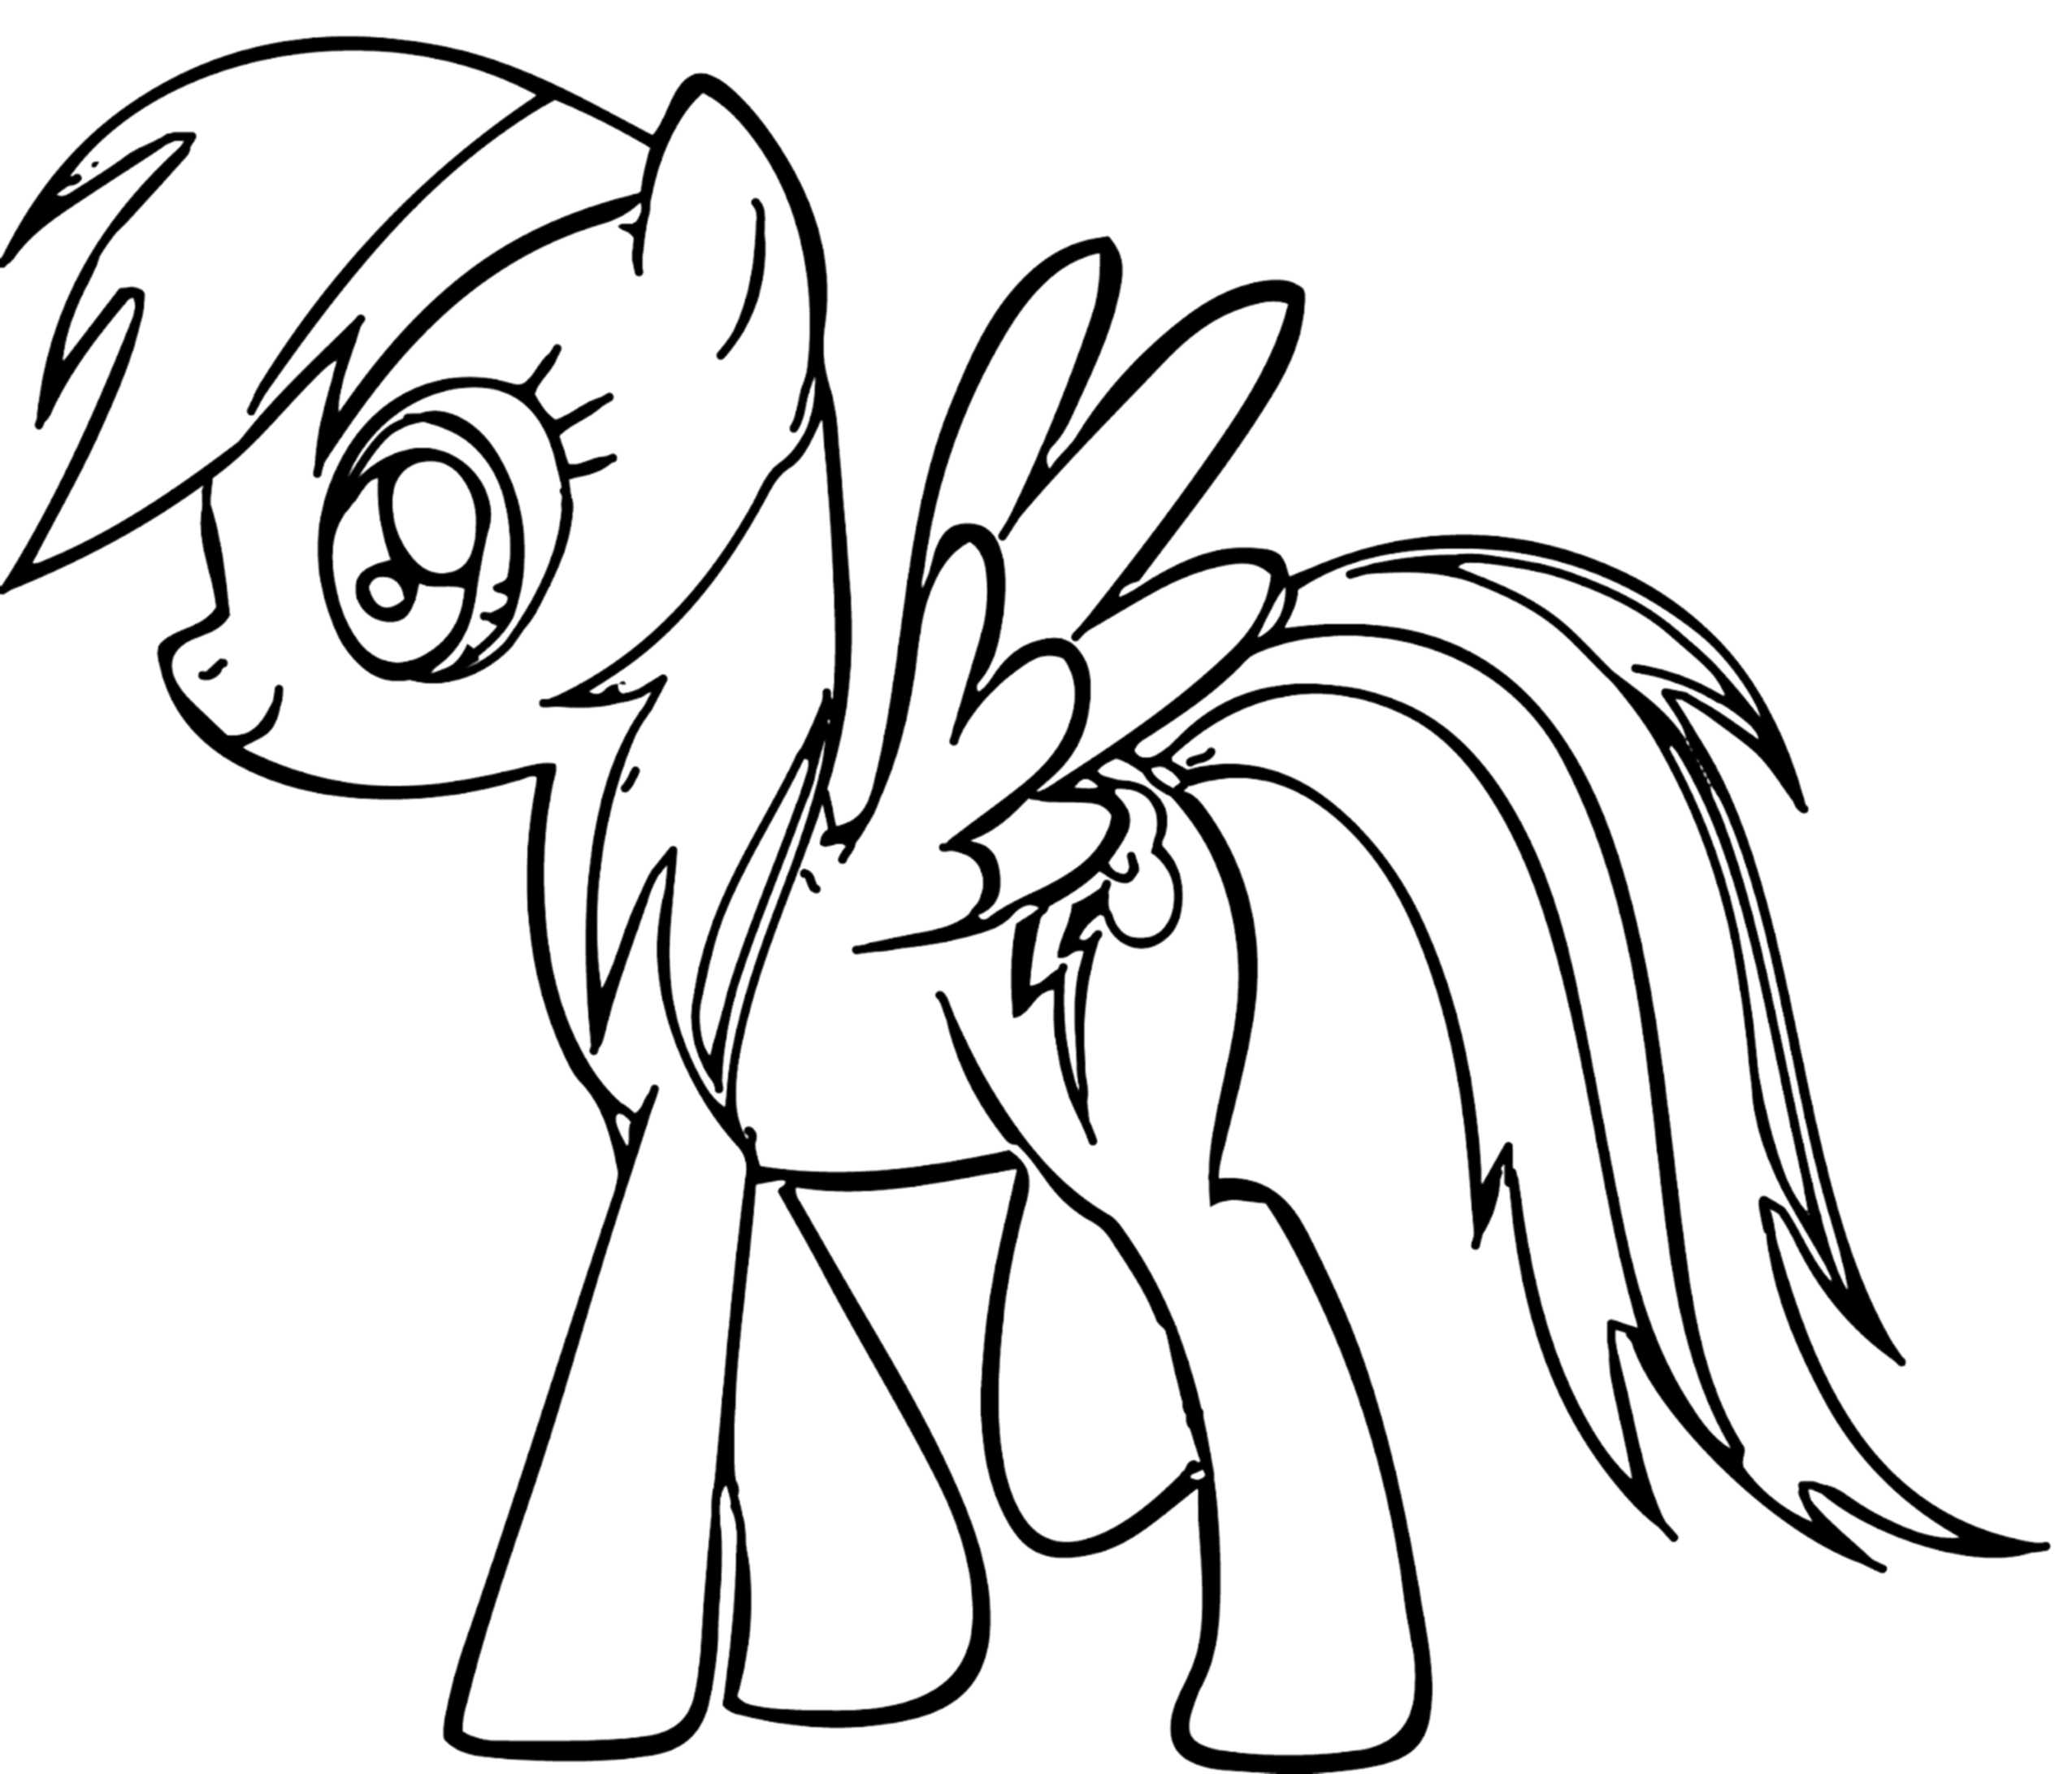 dash coloring pages - photo#2